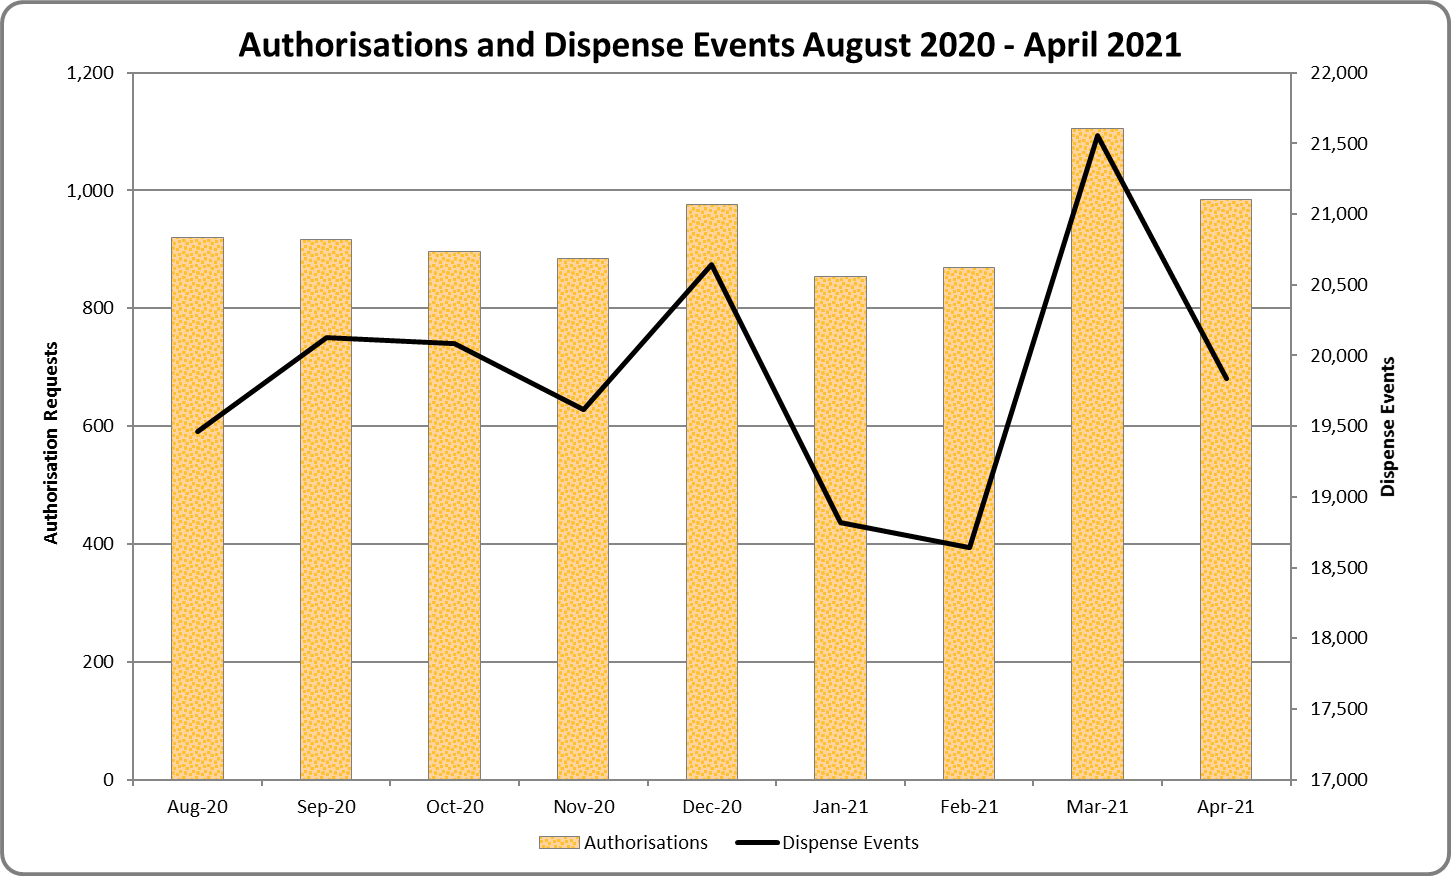 Graph of new authorisation and dispense events for immunoglobulin